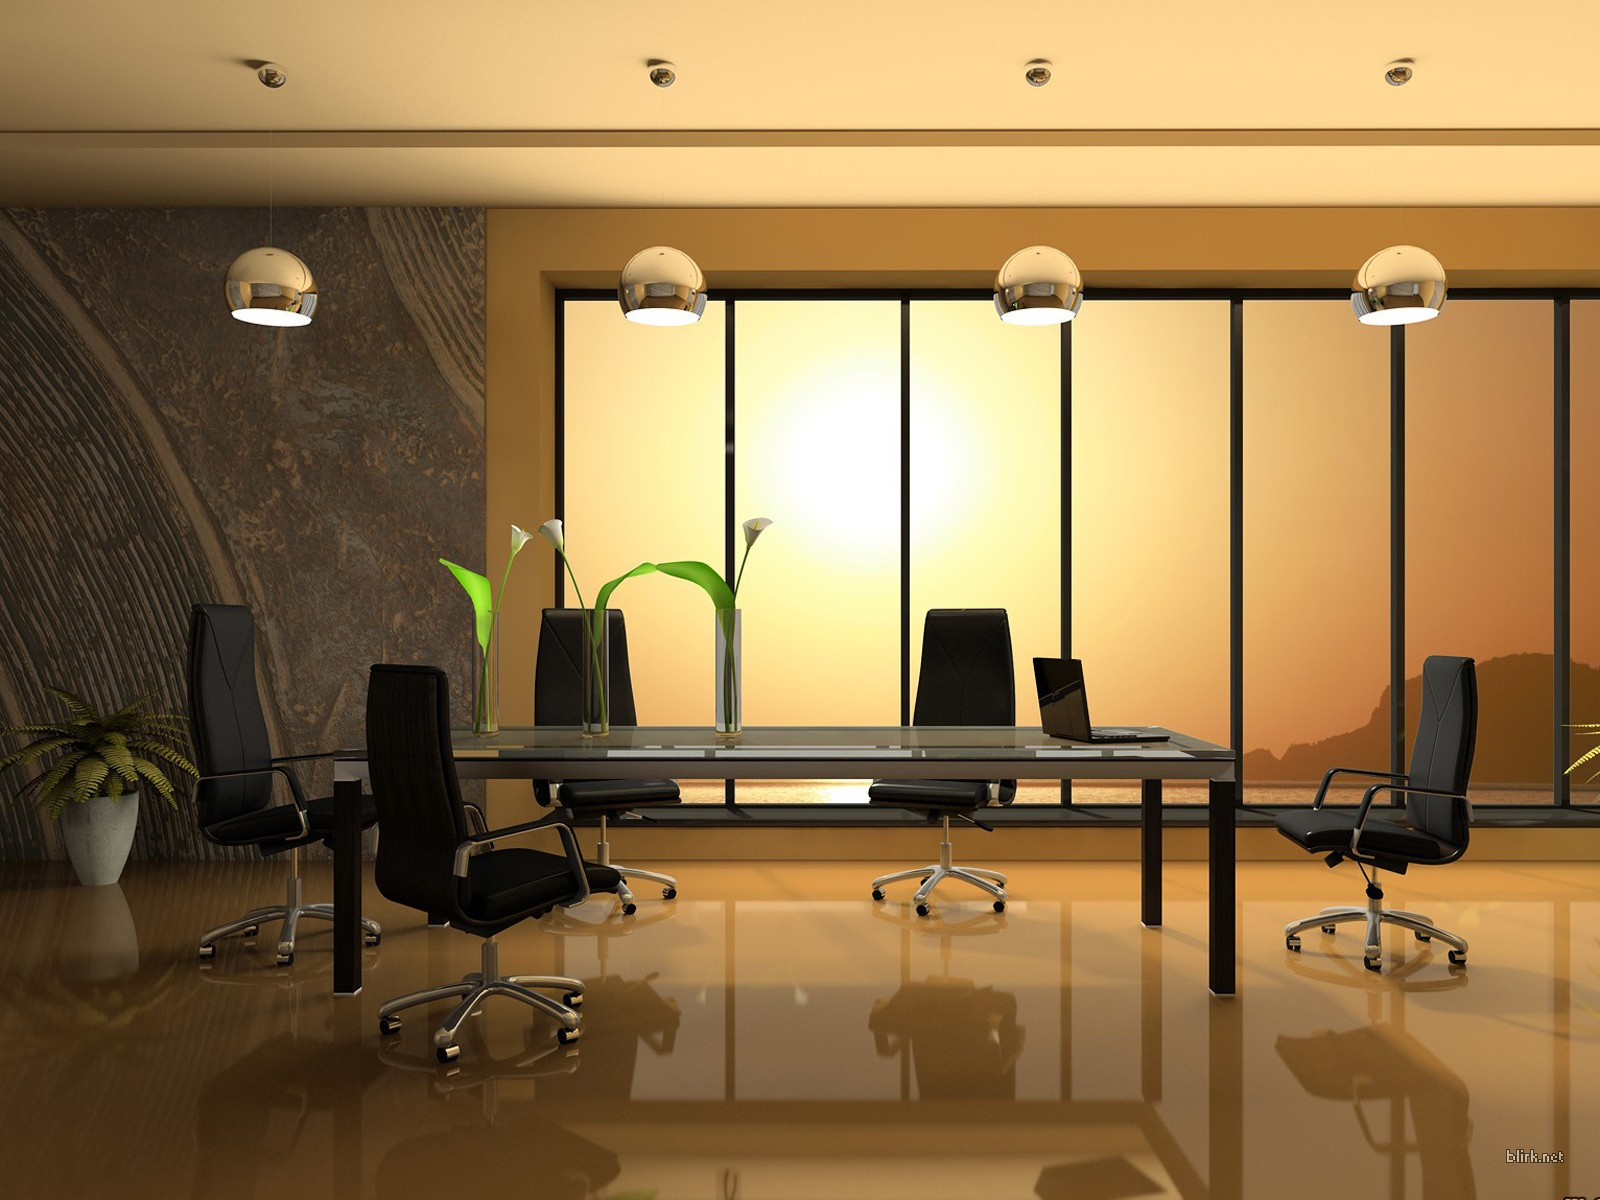 Office room lighting interior design ideas for Venetian interior design ideas for your home